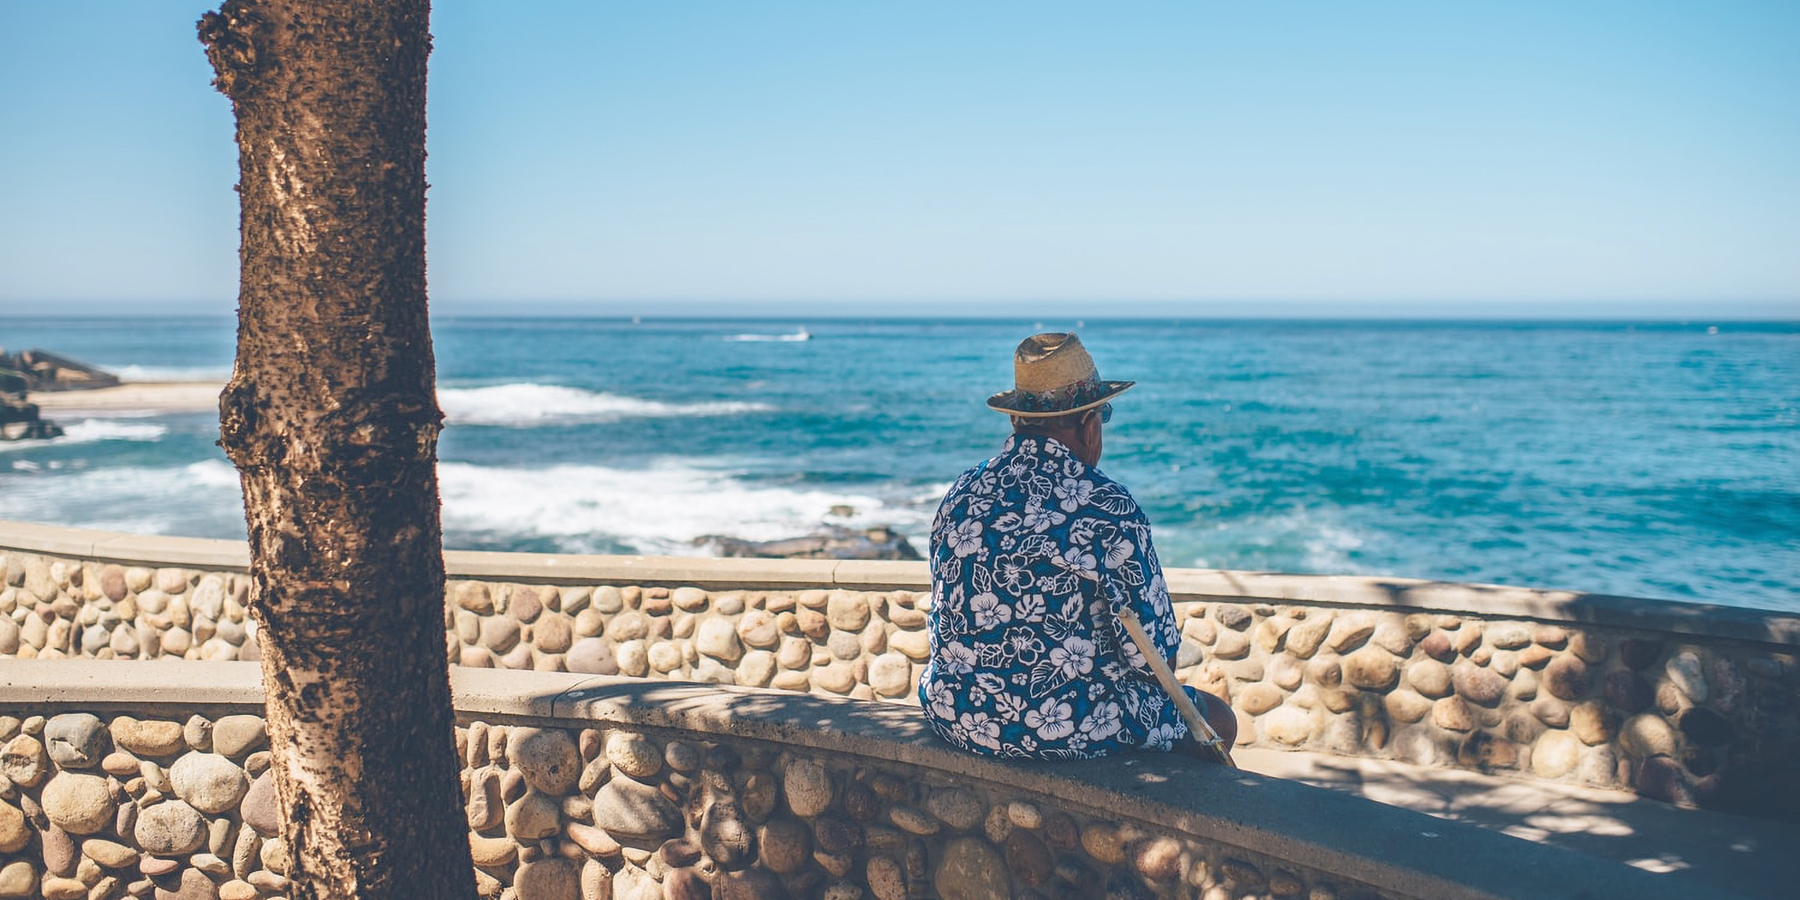 A man wearing a hat and Hawaiian shirt sitting on a bench as he looks out to the ocean with waves crashing in